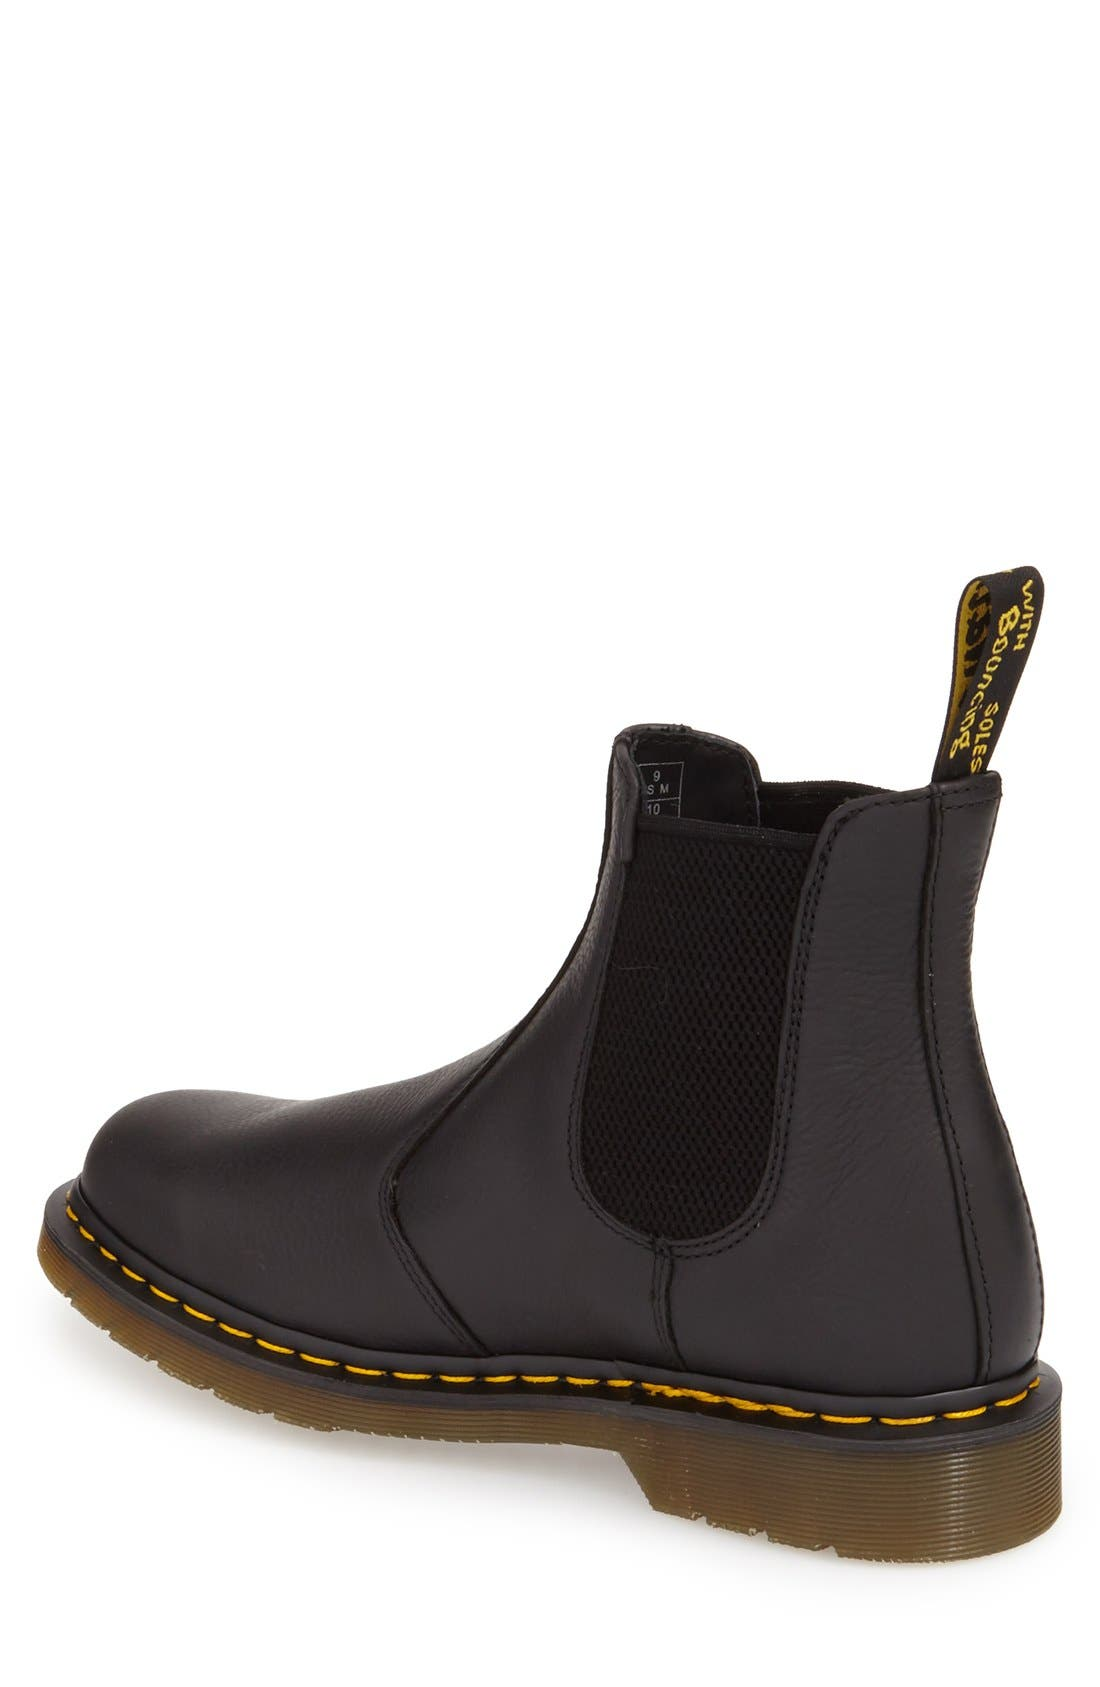 DR. MARTENS, '2976' Chelsea Boot, Alternate thumbnail 3, color, BLACK LEATHER